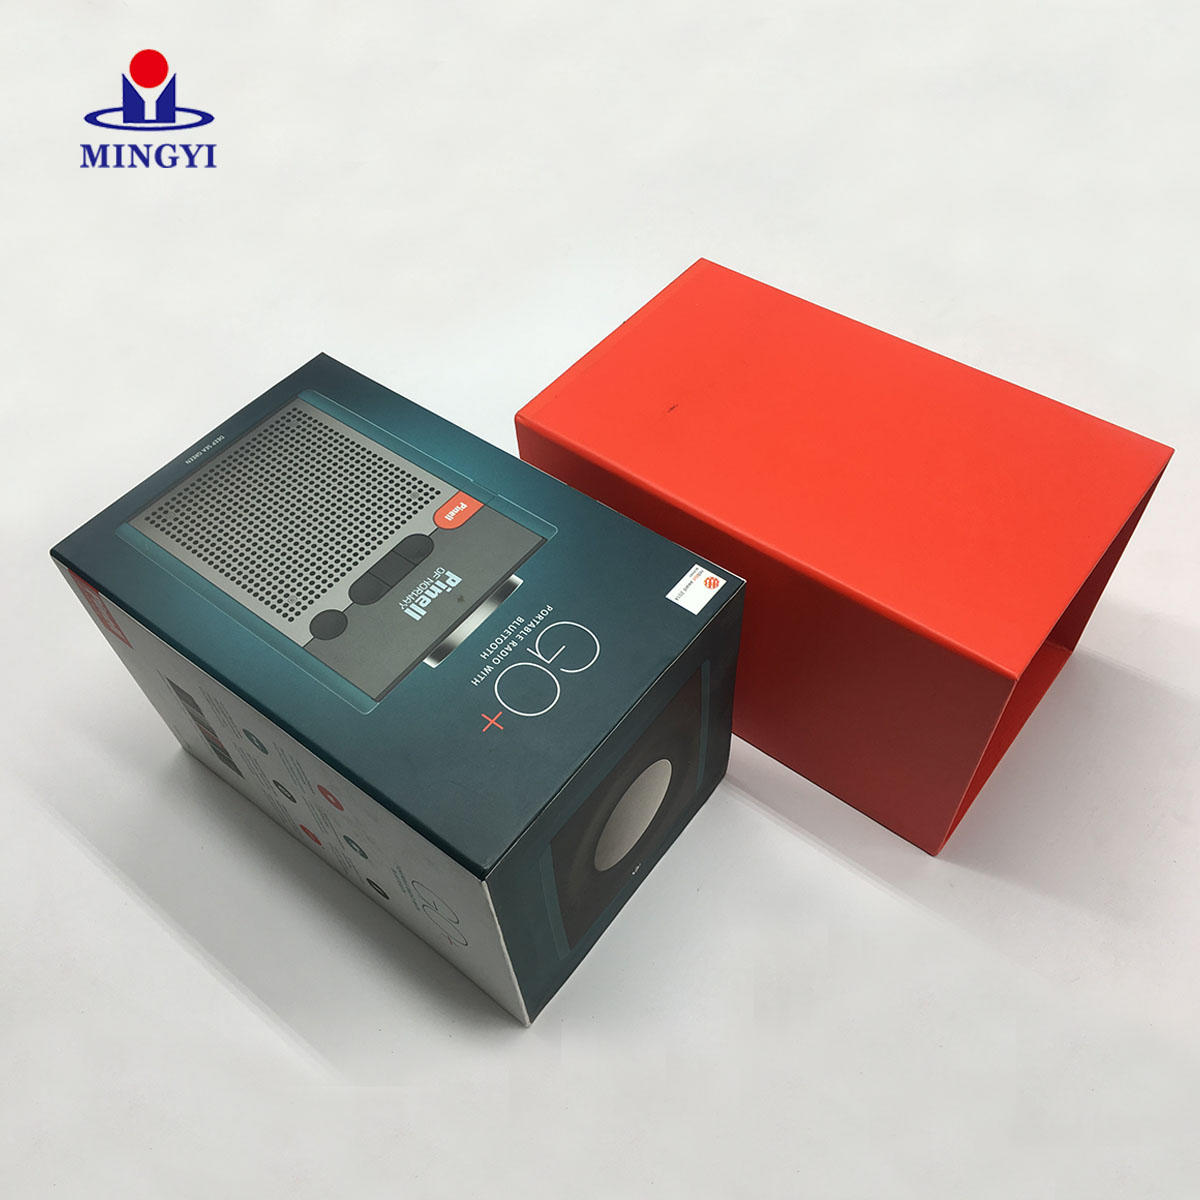 Mingyi Printing luxury decorative gift boxes wholesale sport for snacks